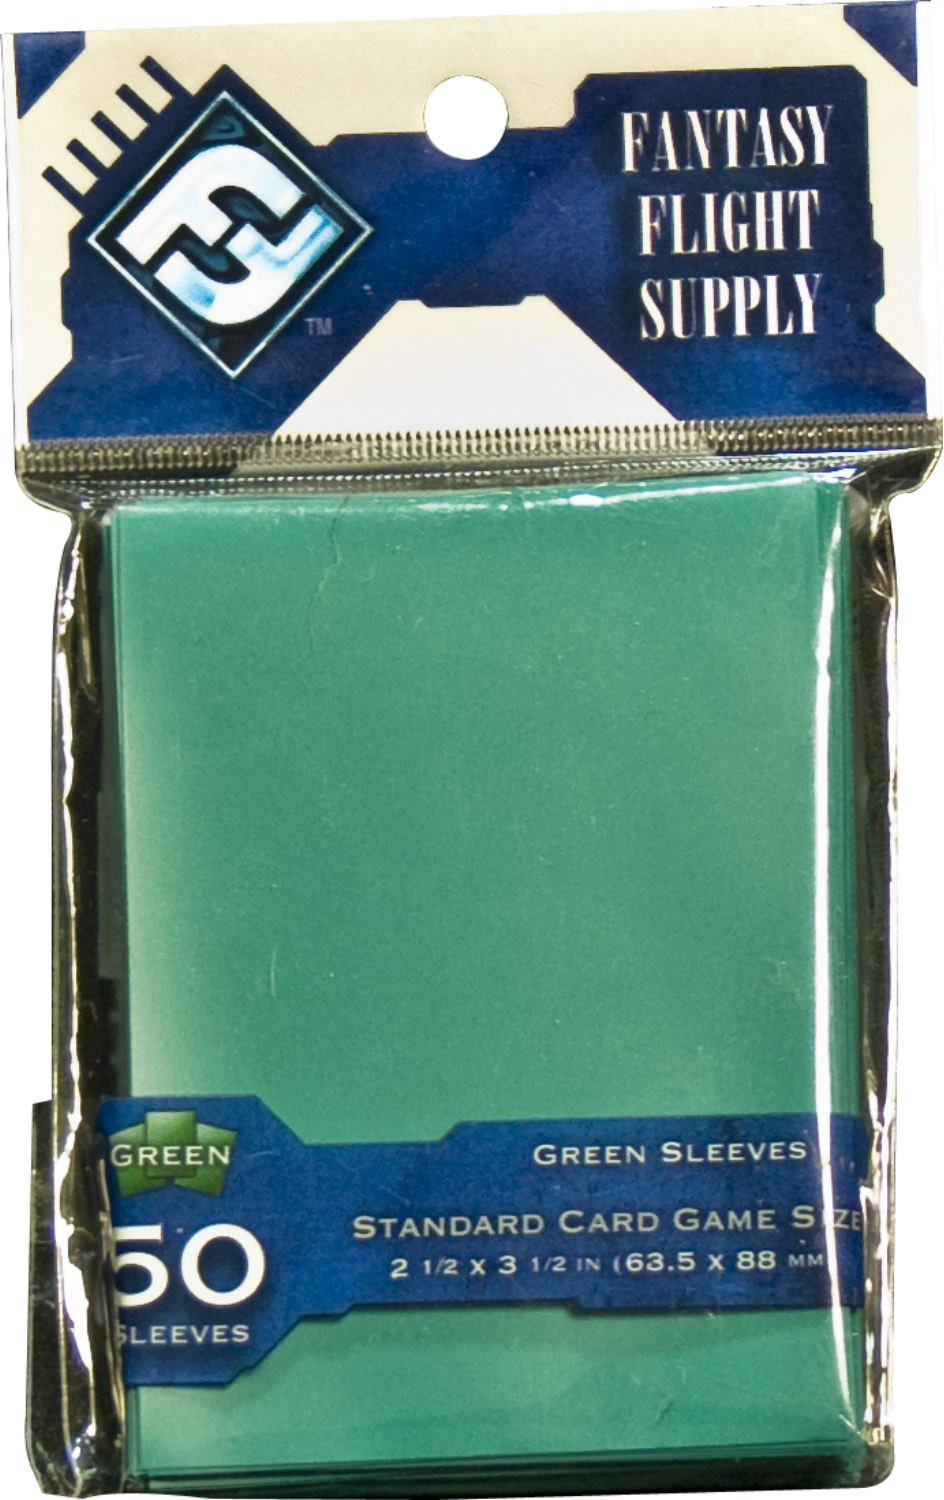 Card Sleeves Standard Board Game Size: Green